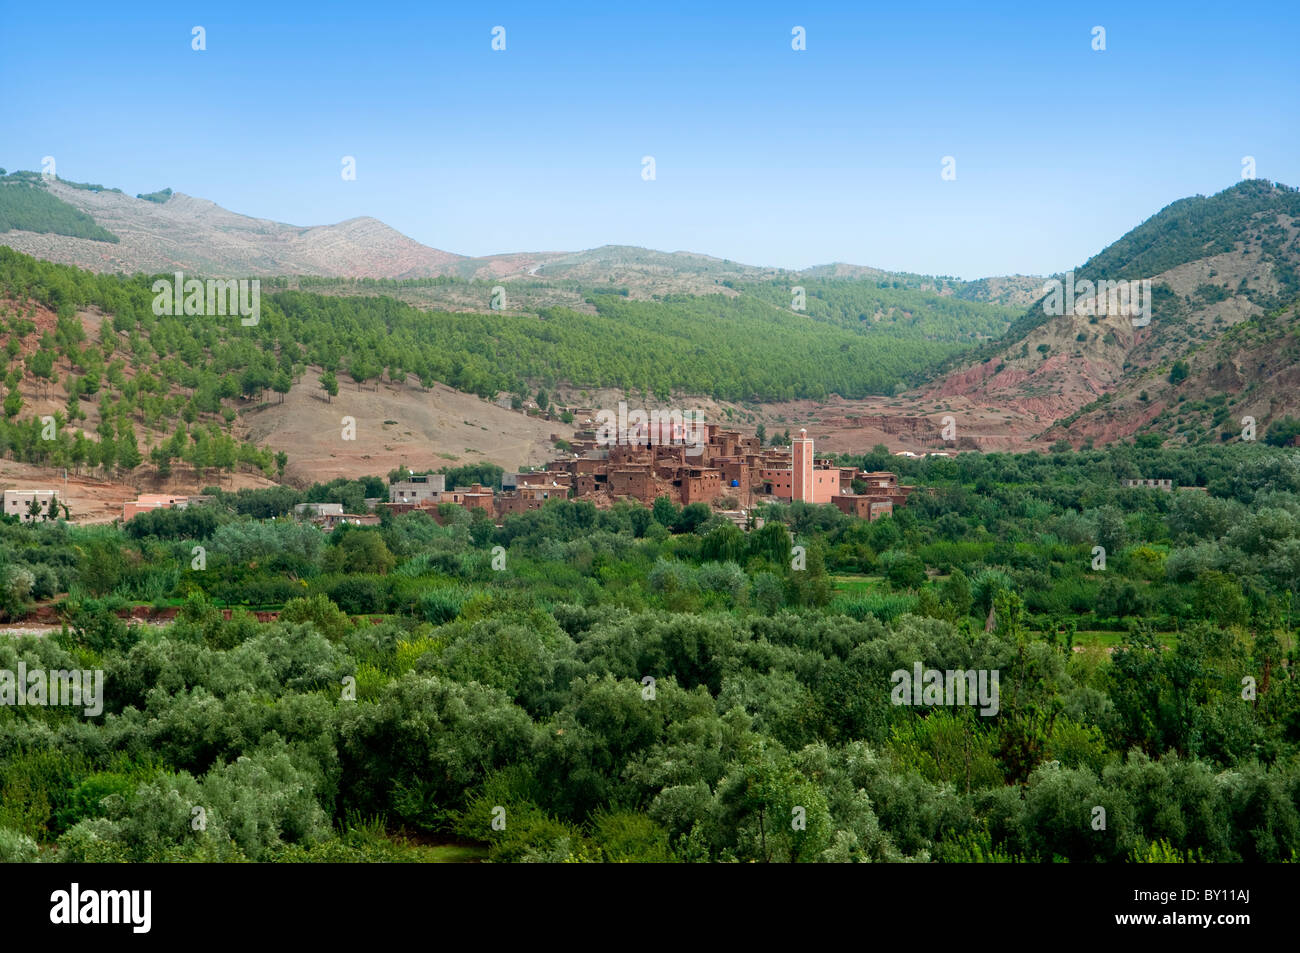 A small Casbah Berber village in the Ourika Valley in the Atlas Mountains of Morocco. - Stock Image